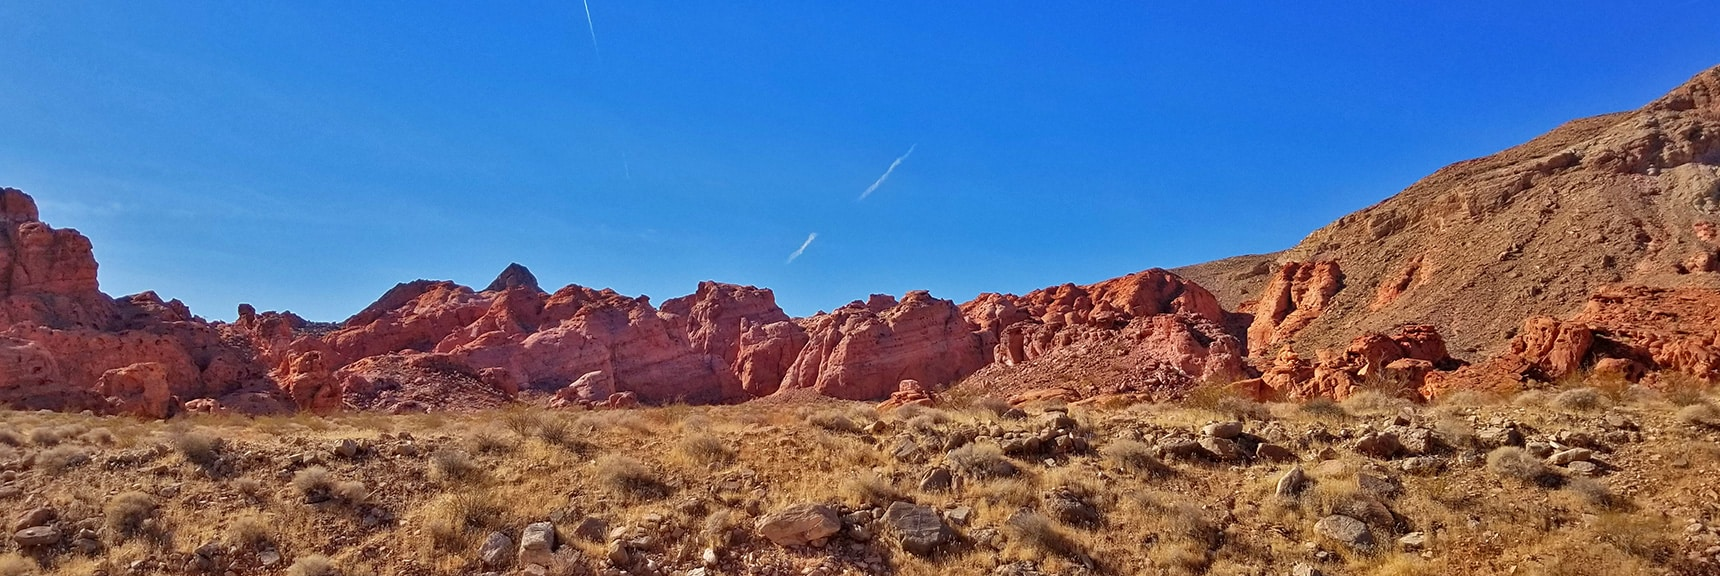 The Sand Dunes Were Sitting On Iron Rich Ground | Bowl of Fire, Lake Mead National Recreation Area, Nevada